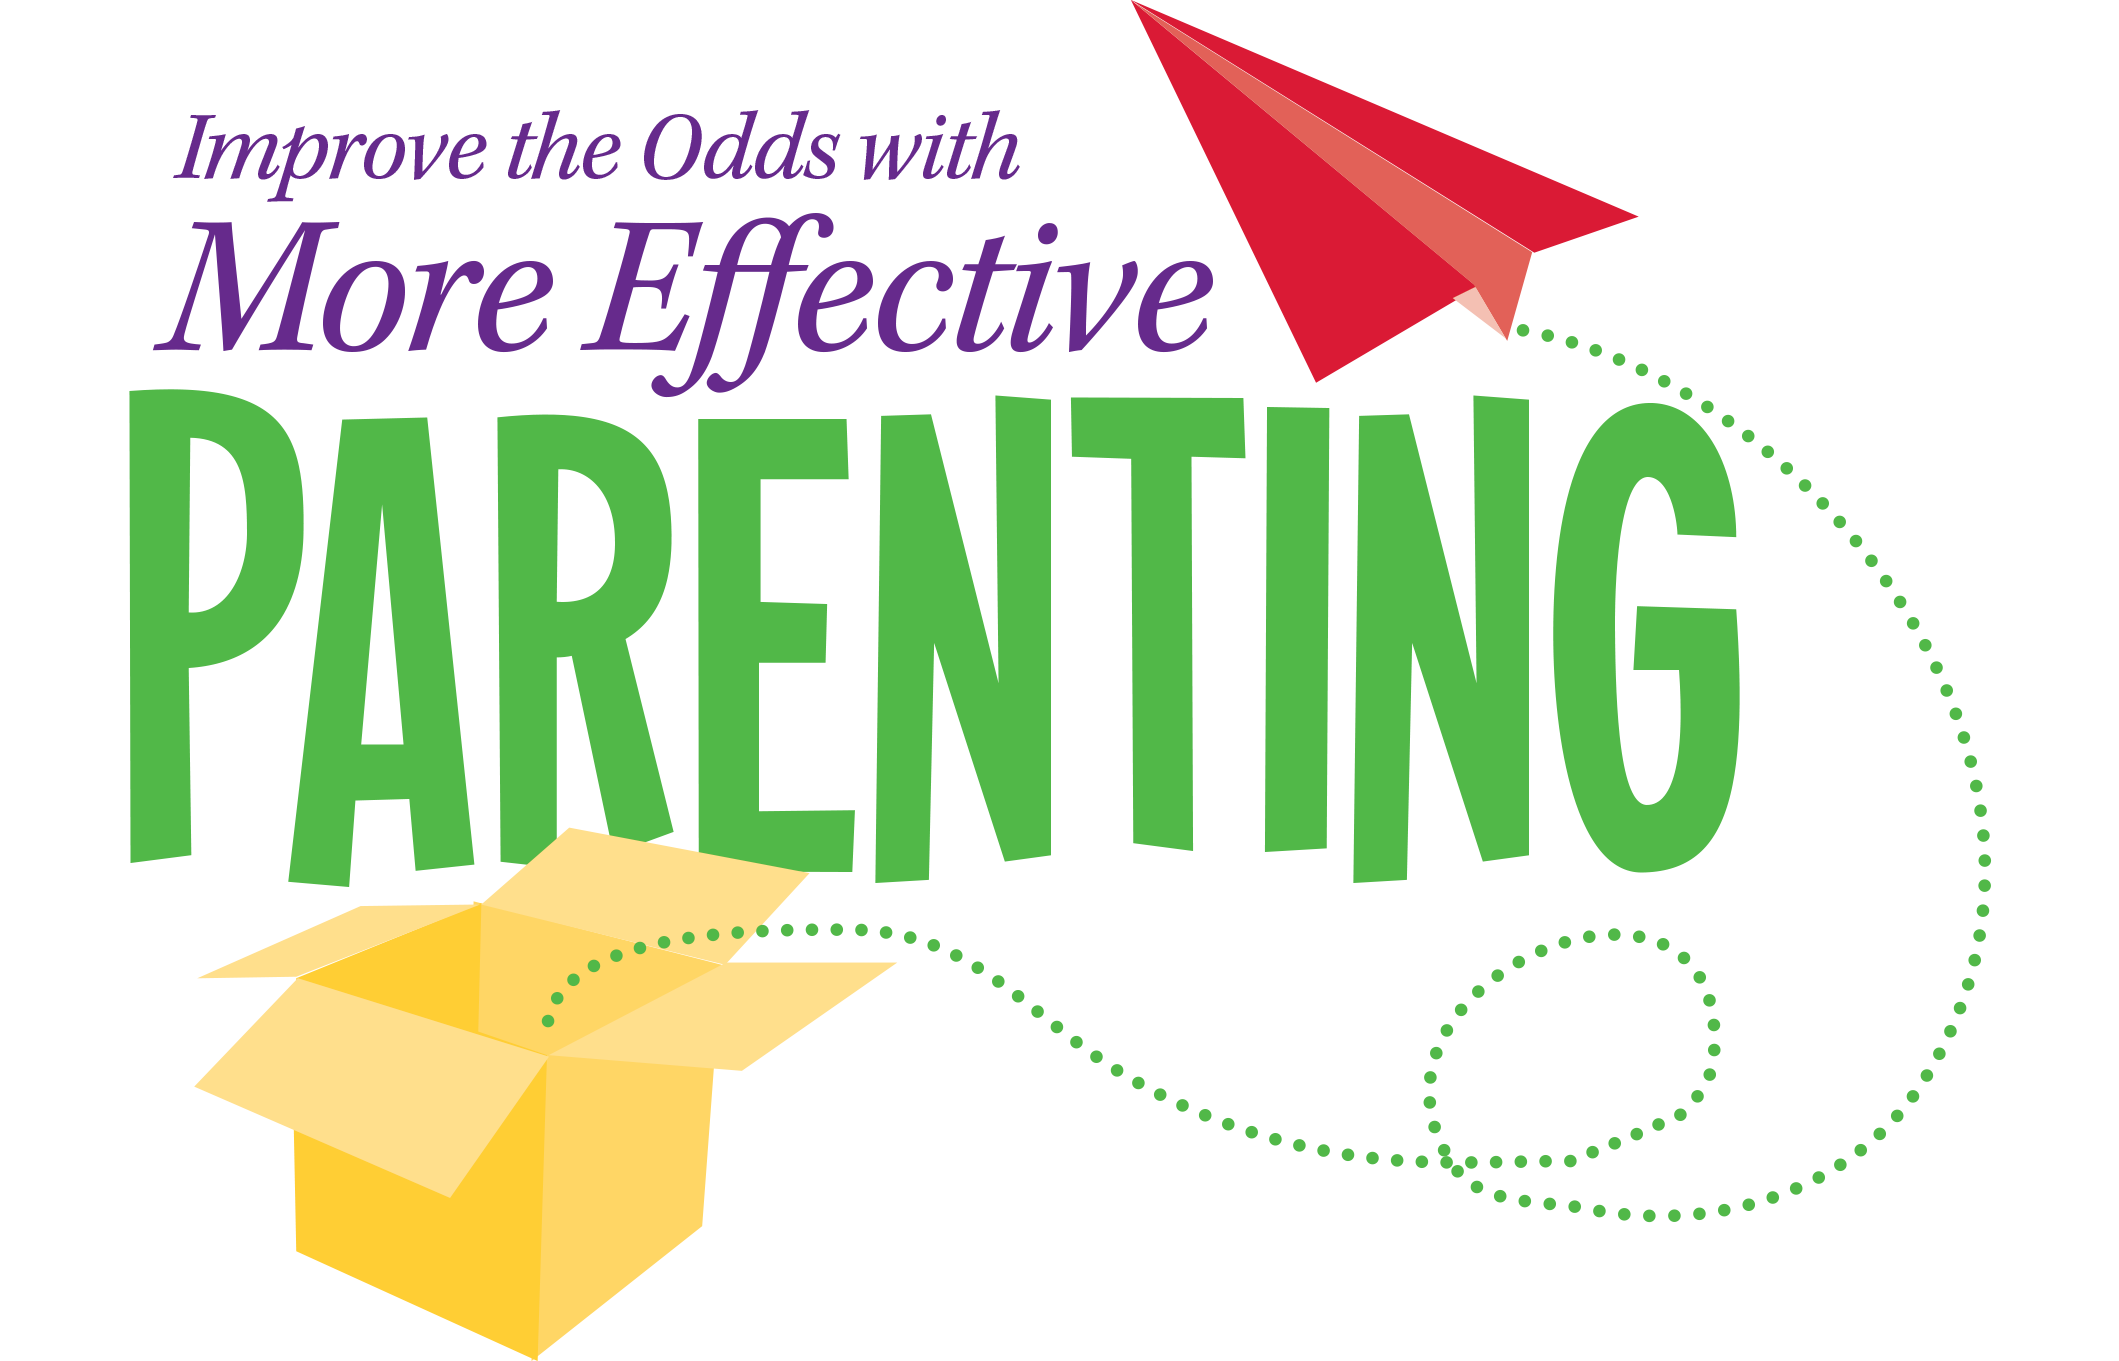 Improve the Odds with More Effective Parenting